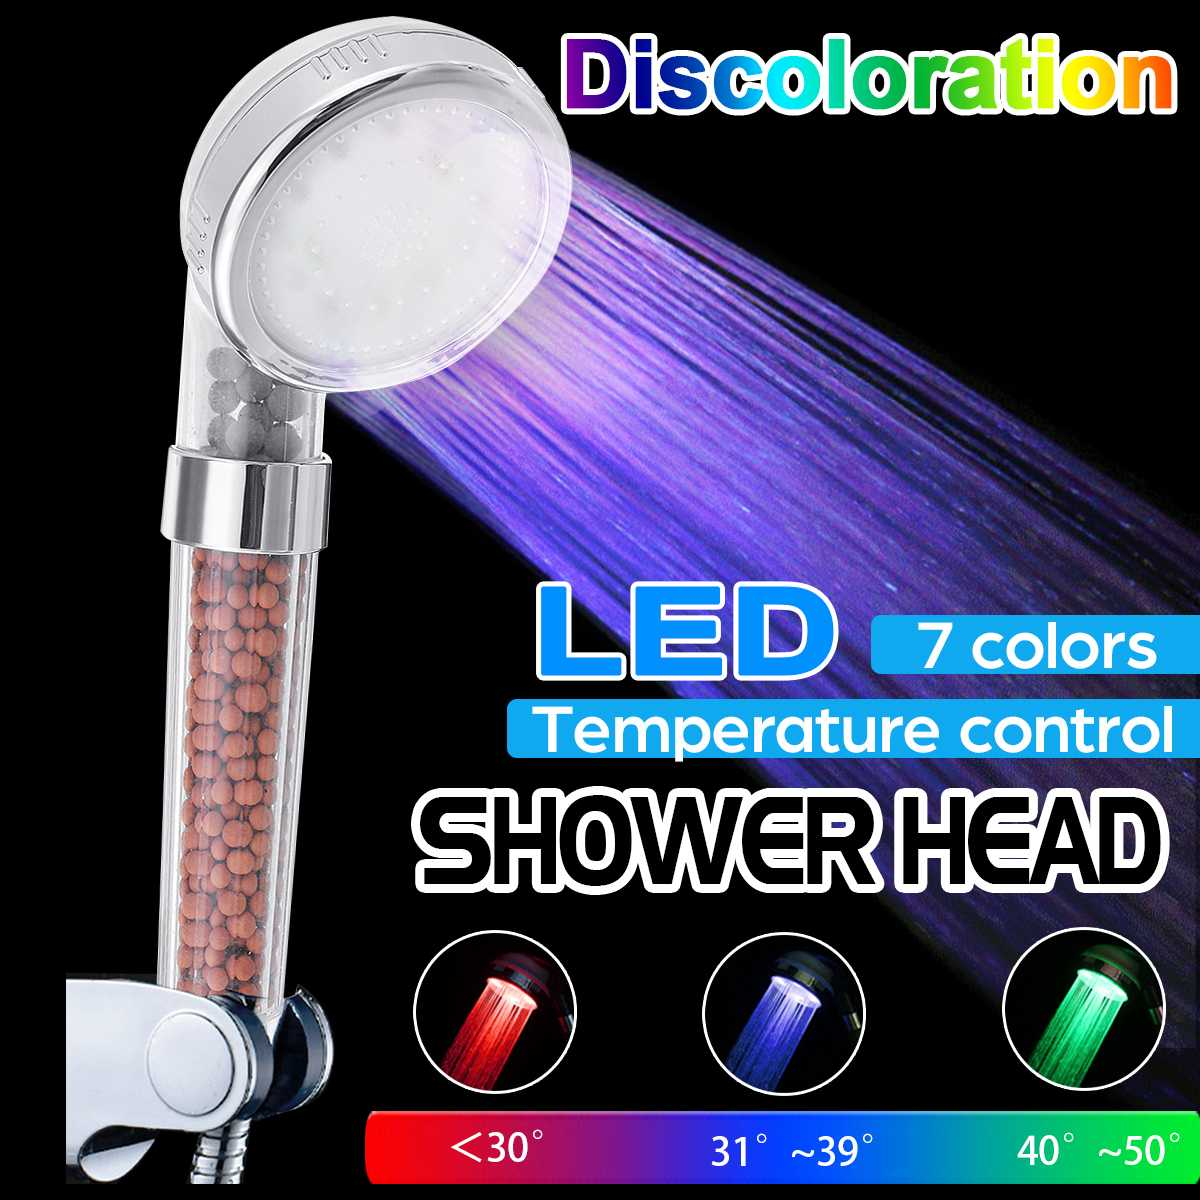 LED RGB Rainfall Bath Shower 7 Color Changing Shower Head High Pressure Saving Water Bathroom Anion Filter Shower SPA Nozzle